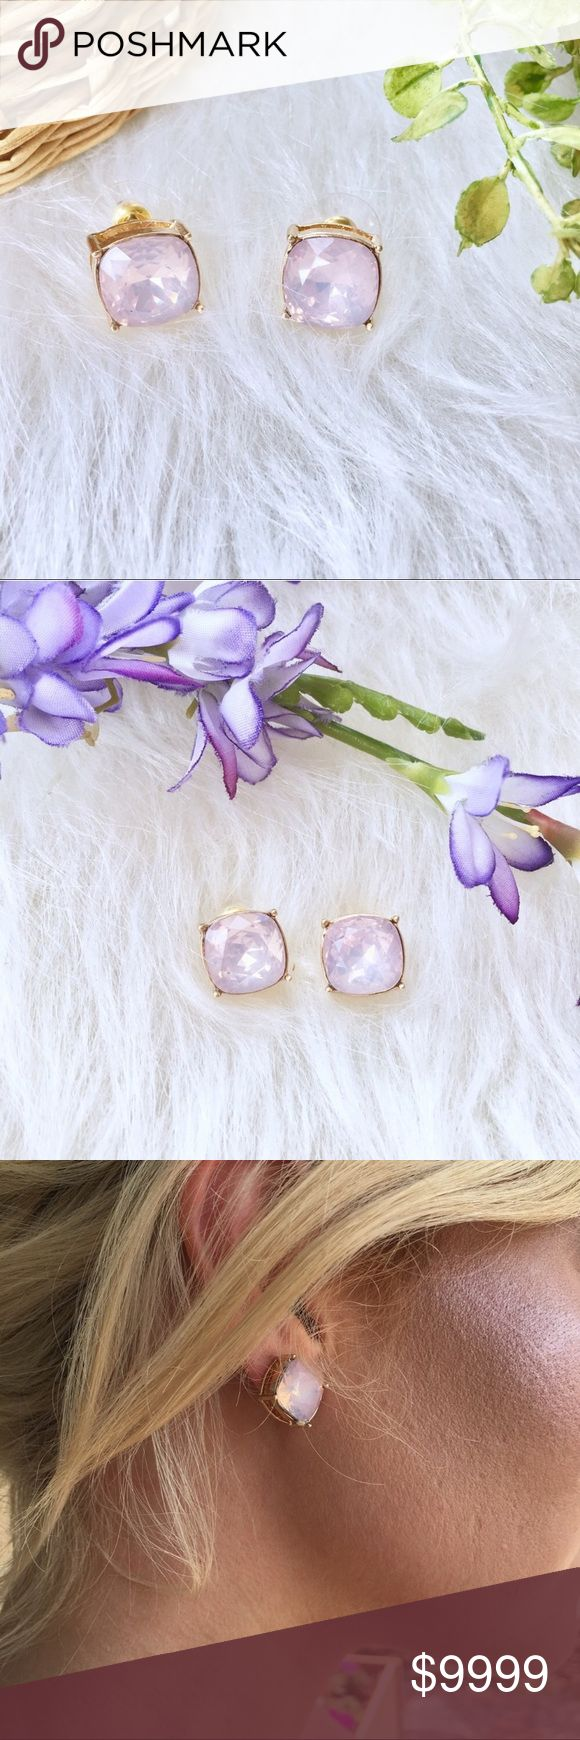 """Pink Opal Earrings Studs Beautiful opal earring studs. Material: 1/2"""" pink opal stone, 14K gold plated COMING SOON. PRICE WILL DROP WHEN THEY COME IN!!! Jewelry Earrings"""